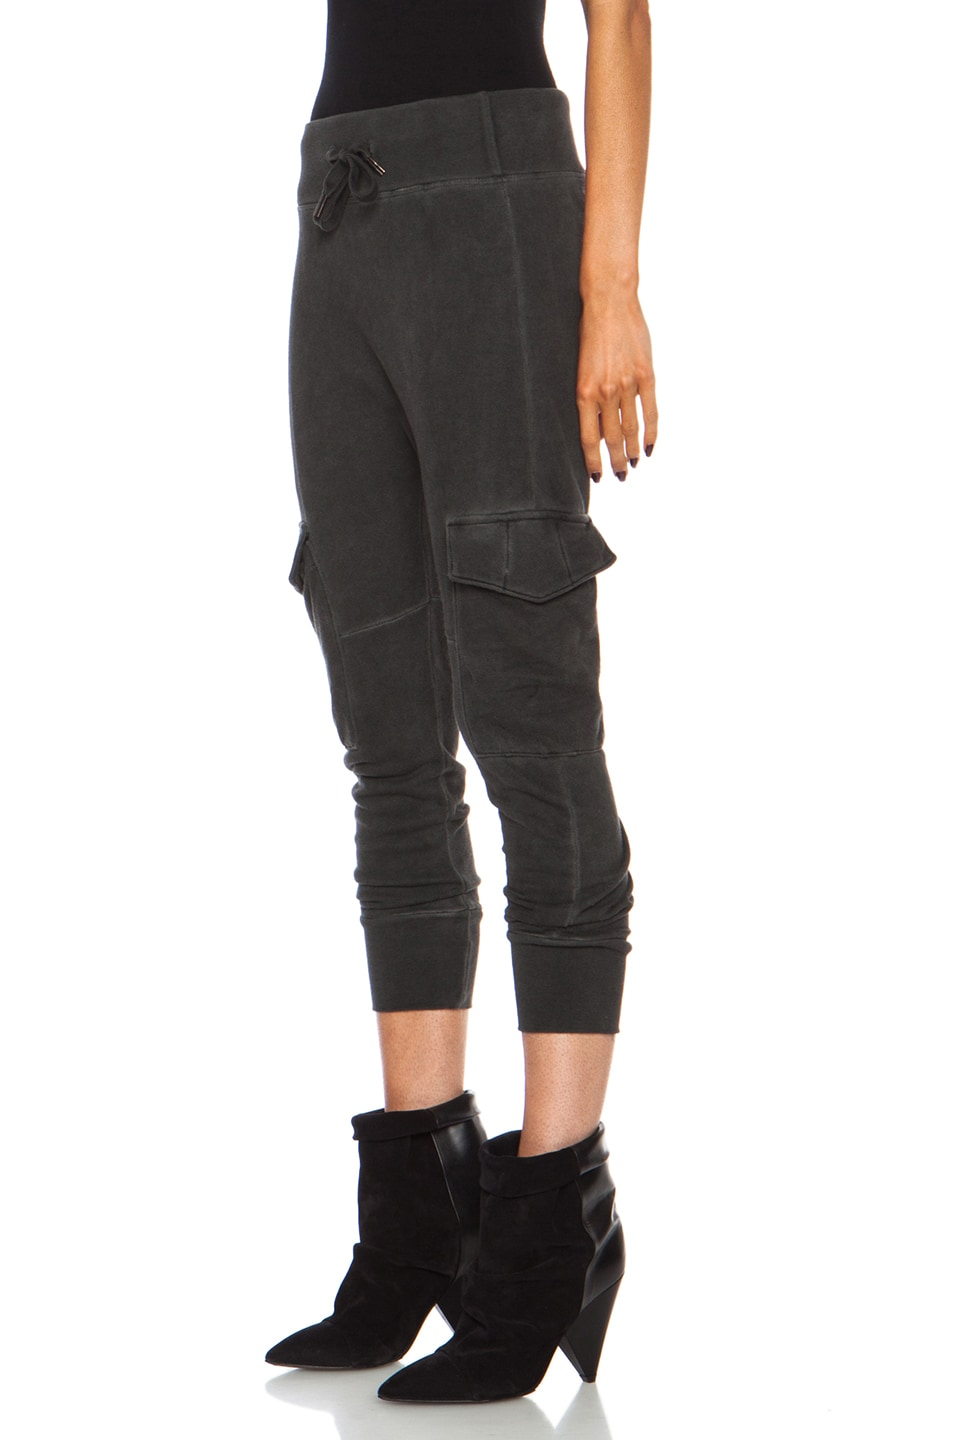 Image 2 of NSF Smith Cotton Sweatpant in Oil Wash Black